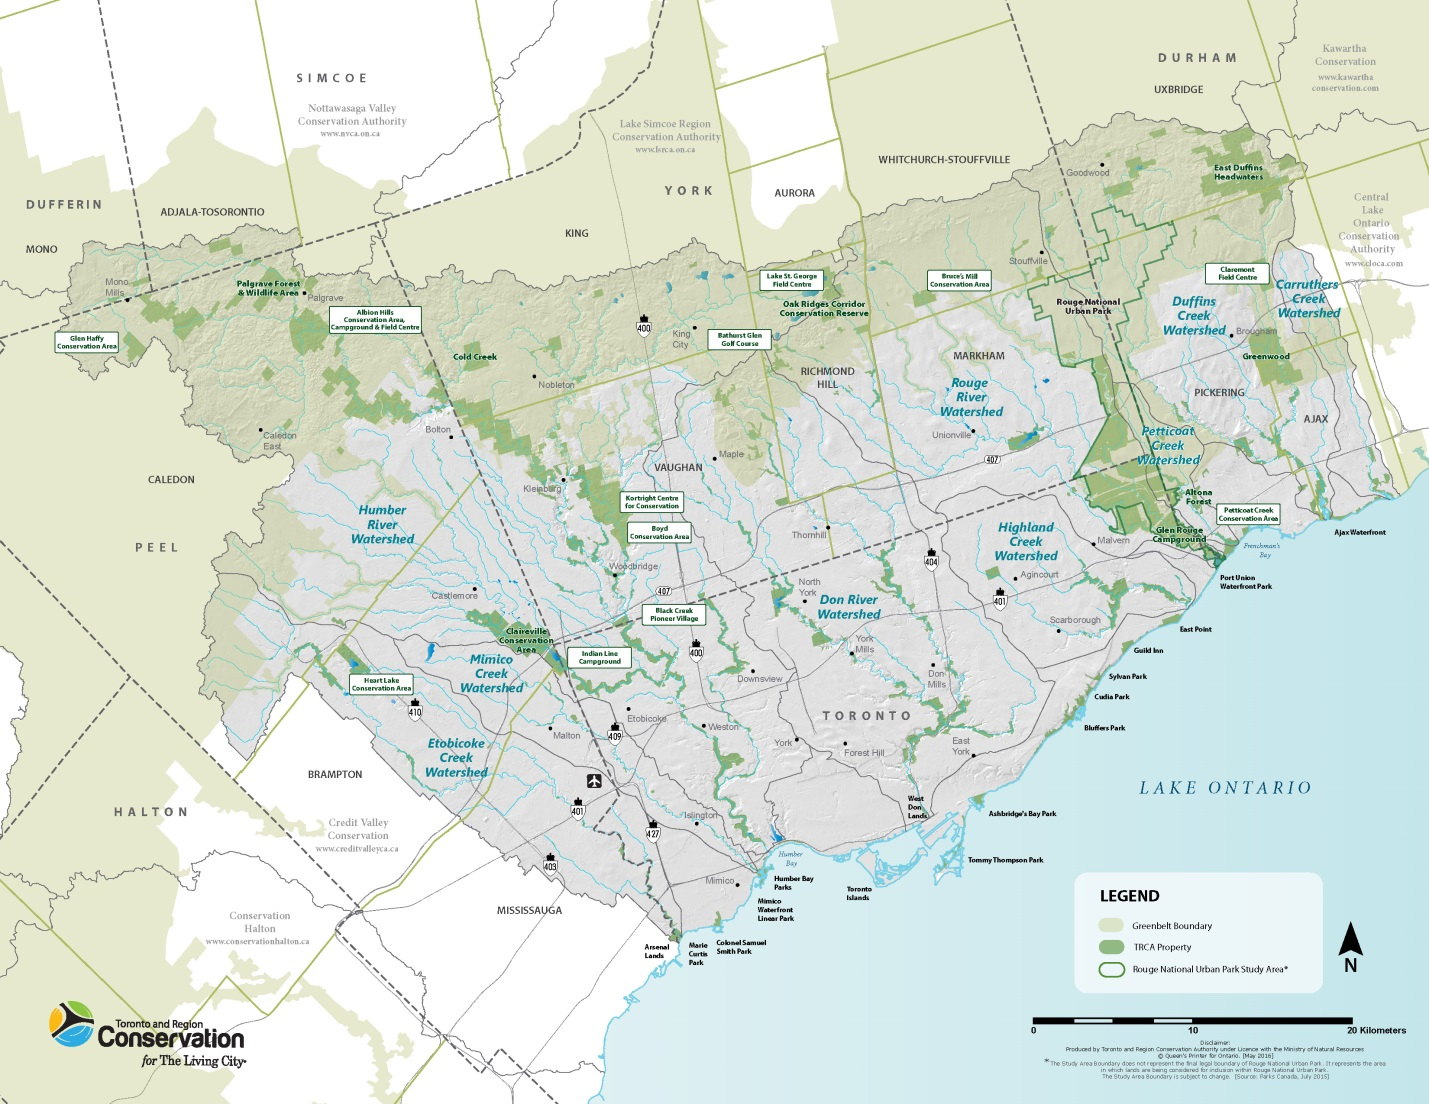 map of the nine watersheds in TRCA jurisdiction